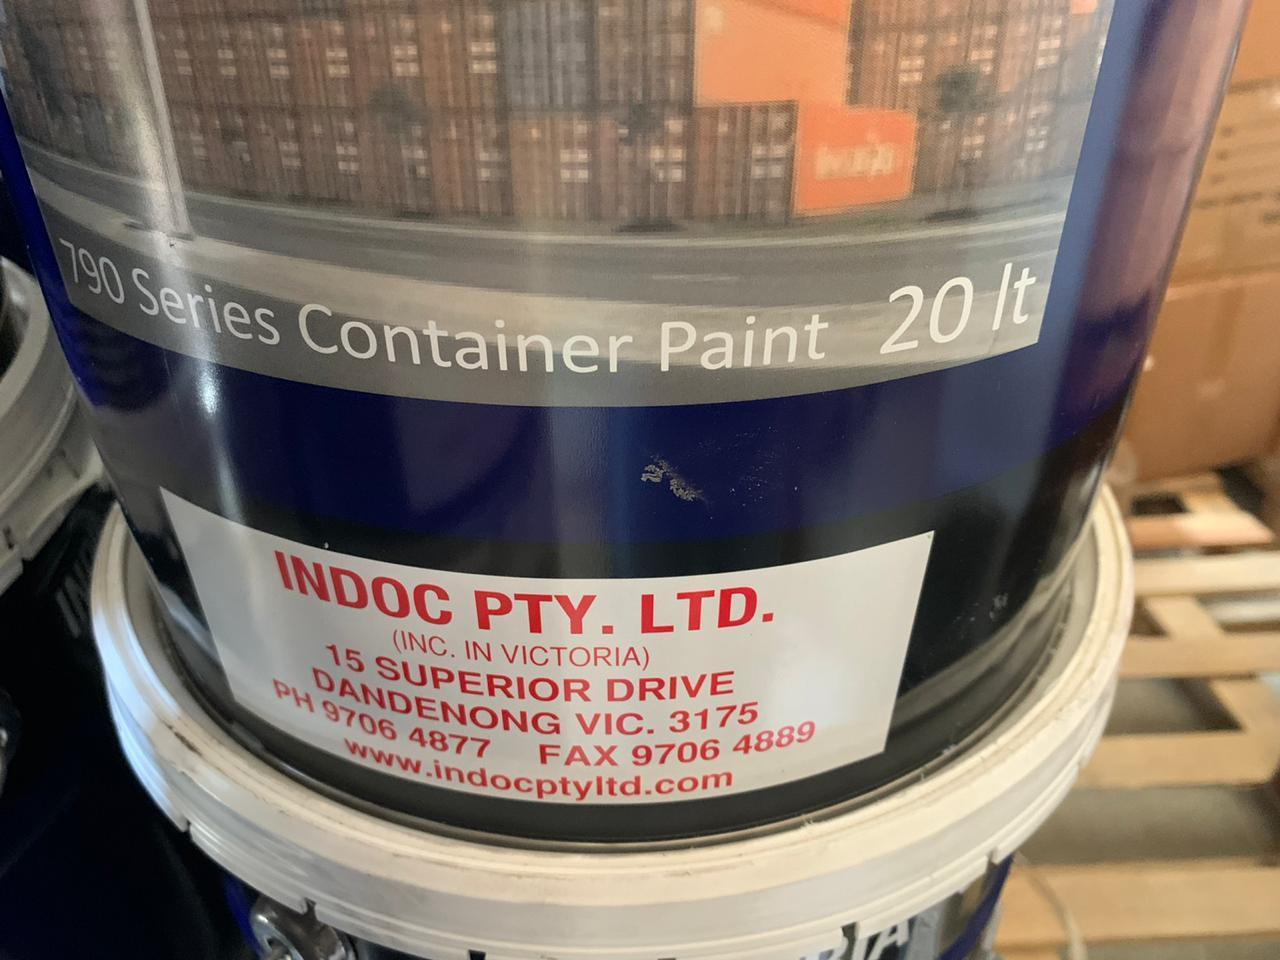 Pail indoc pty 790 series container paint 20 liter